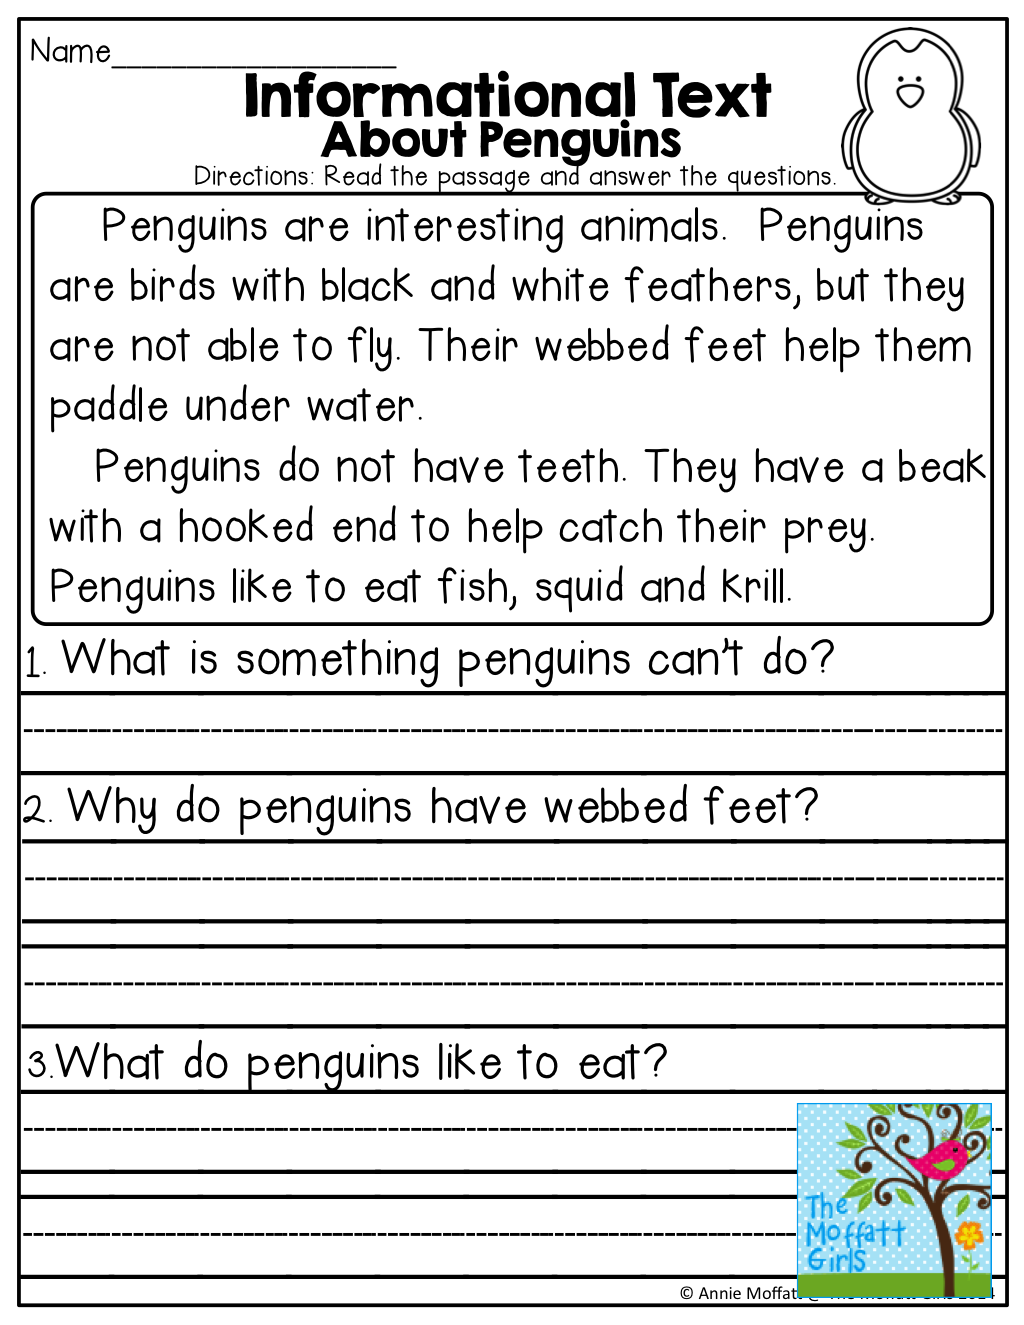 Informational Text About Penguins And Tons Of Other Great